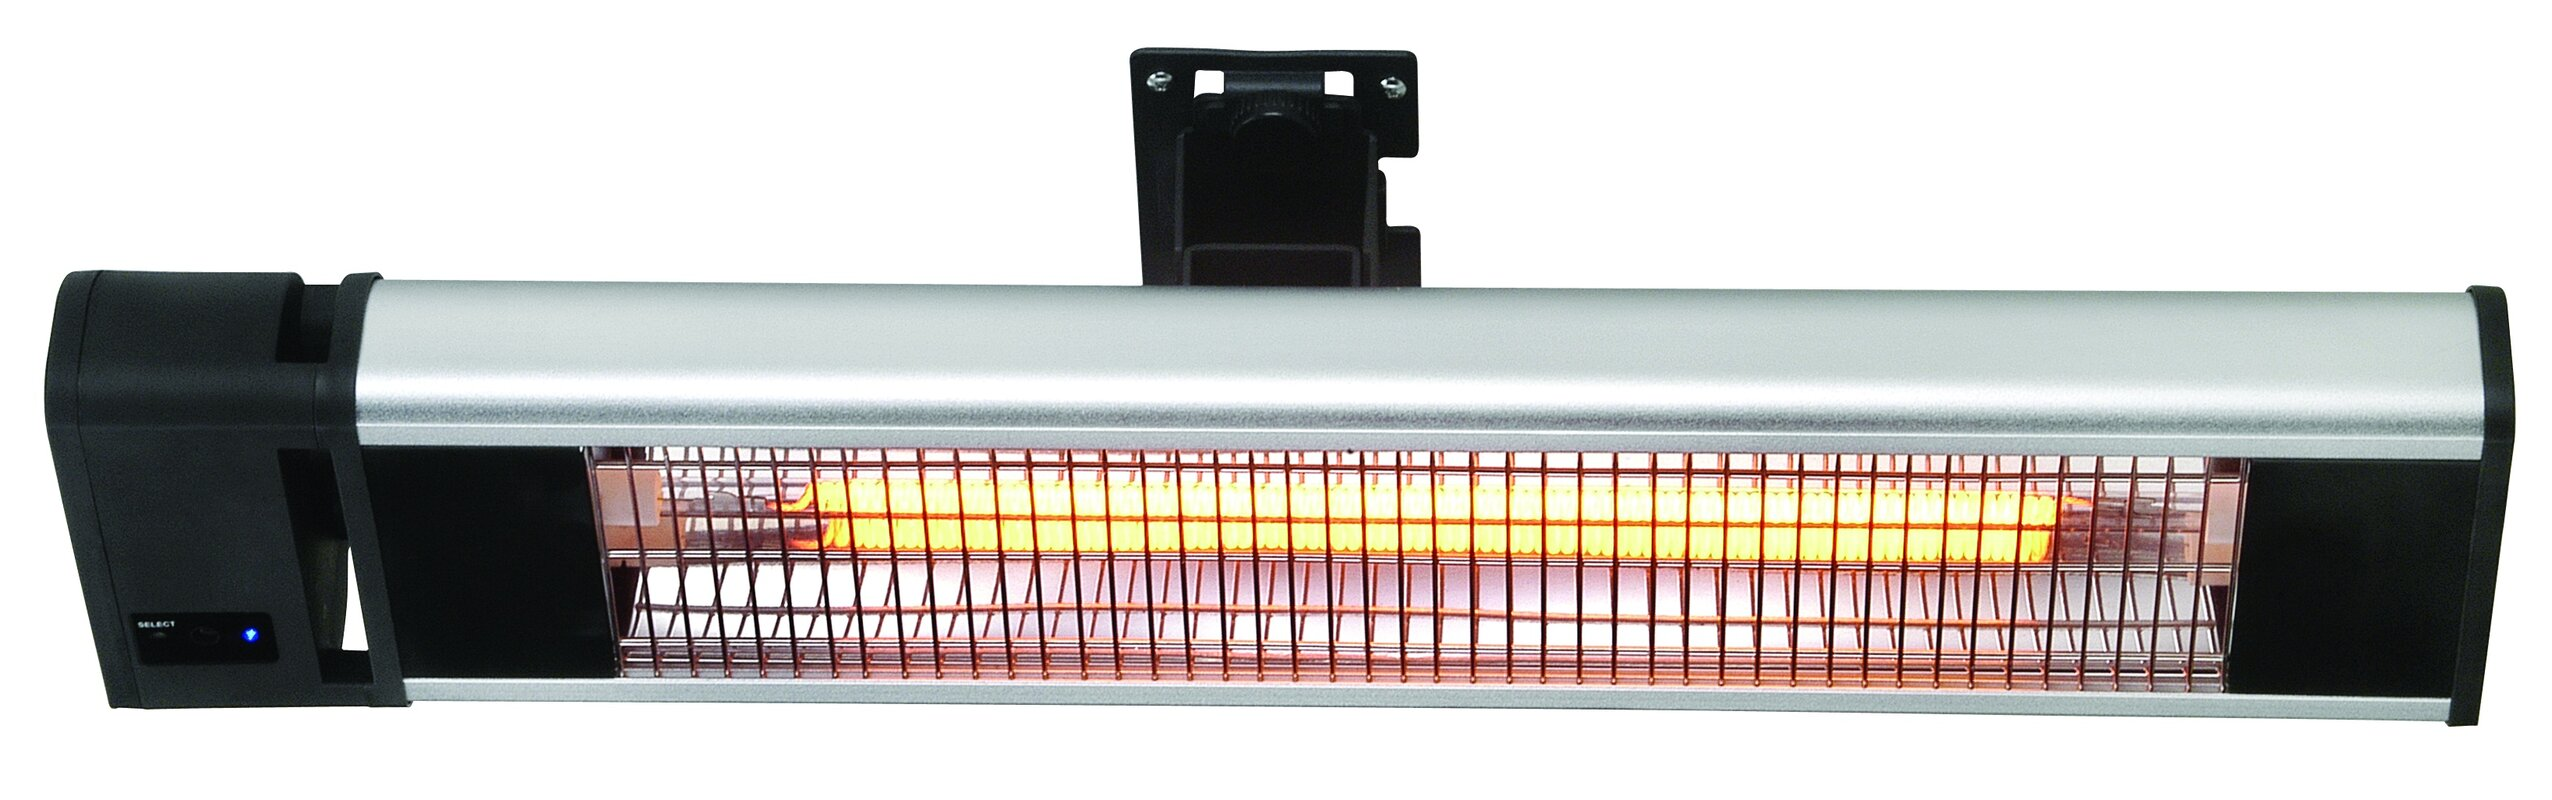 Hetr Wall Ceiling Mounted 1500 Watt Electric Mounted Patio Heater